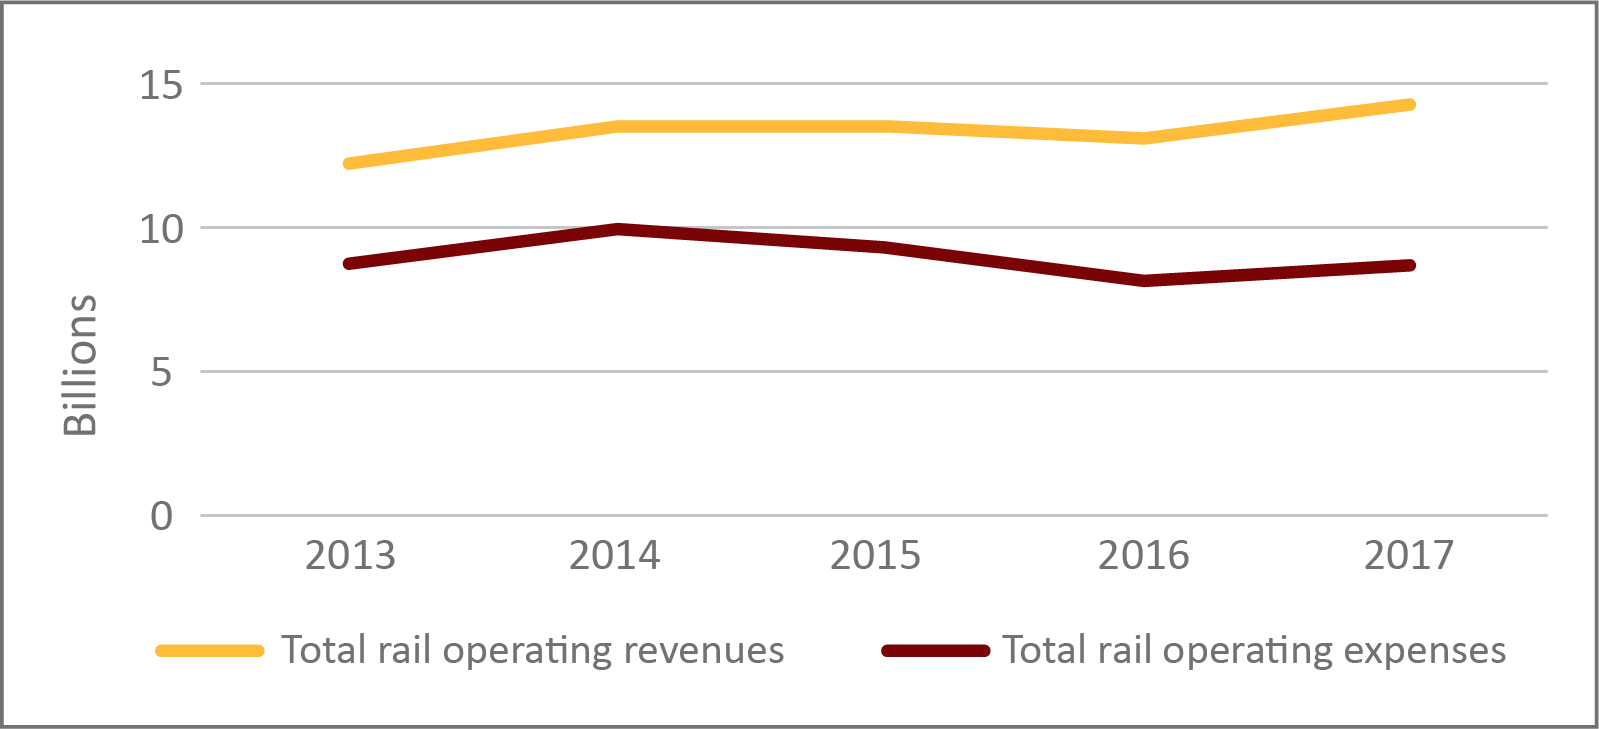 Figure 3: Operating revenues and expenses, mainline railway companies